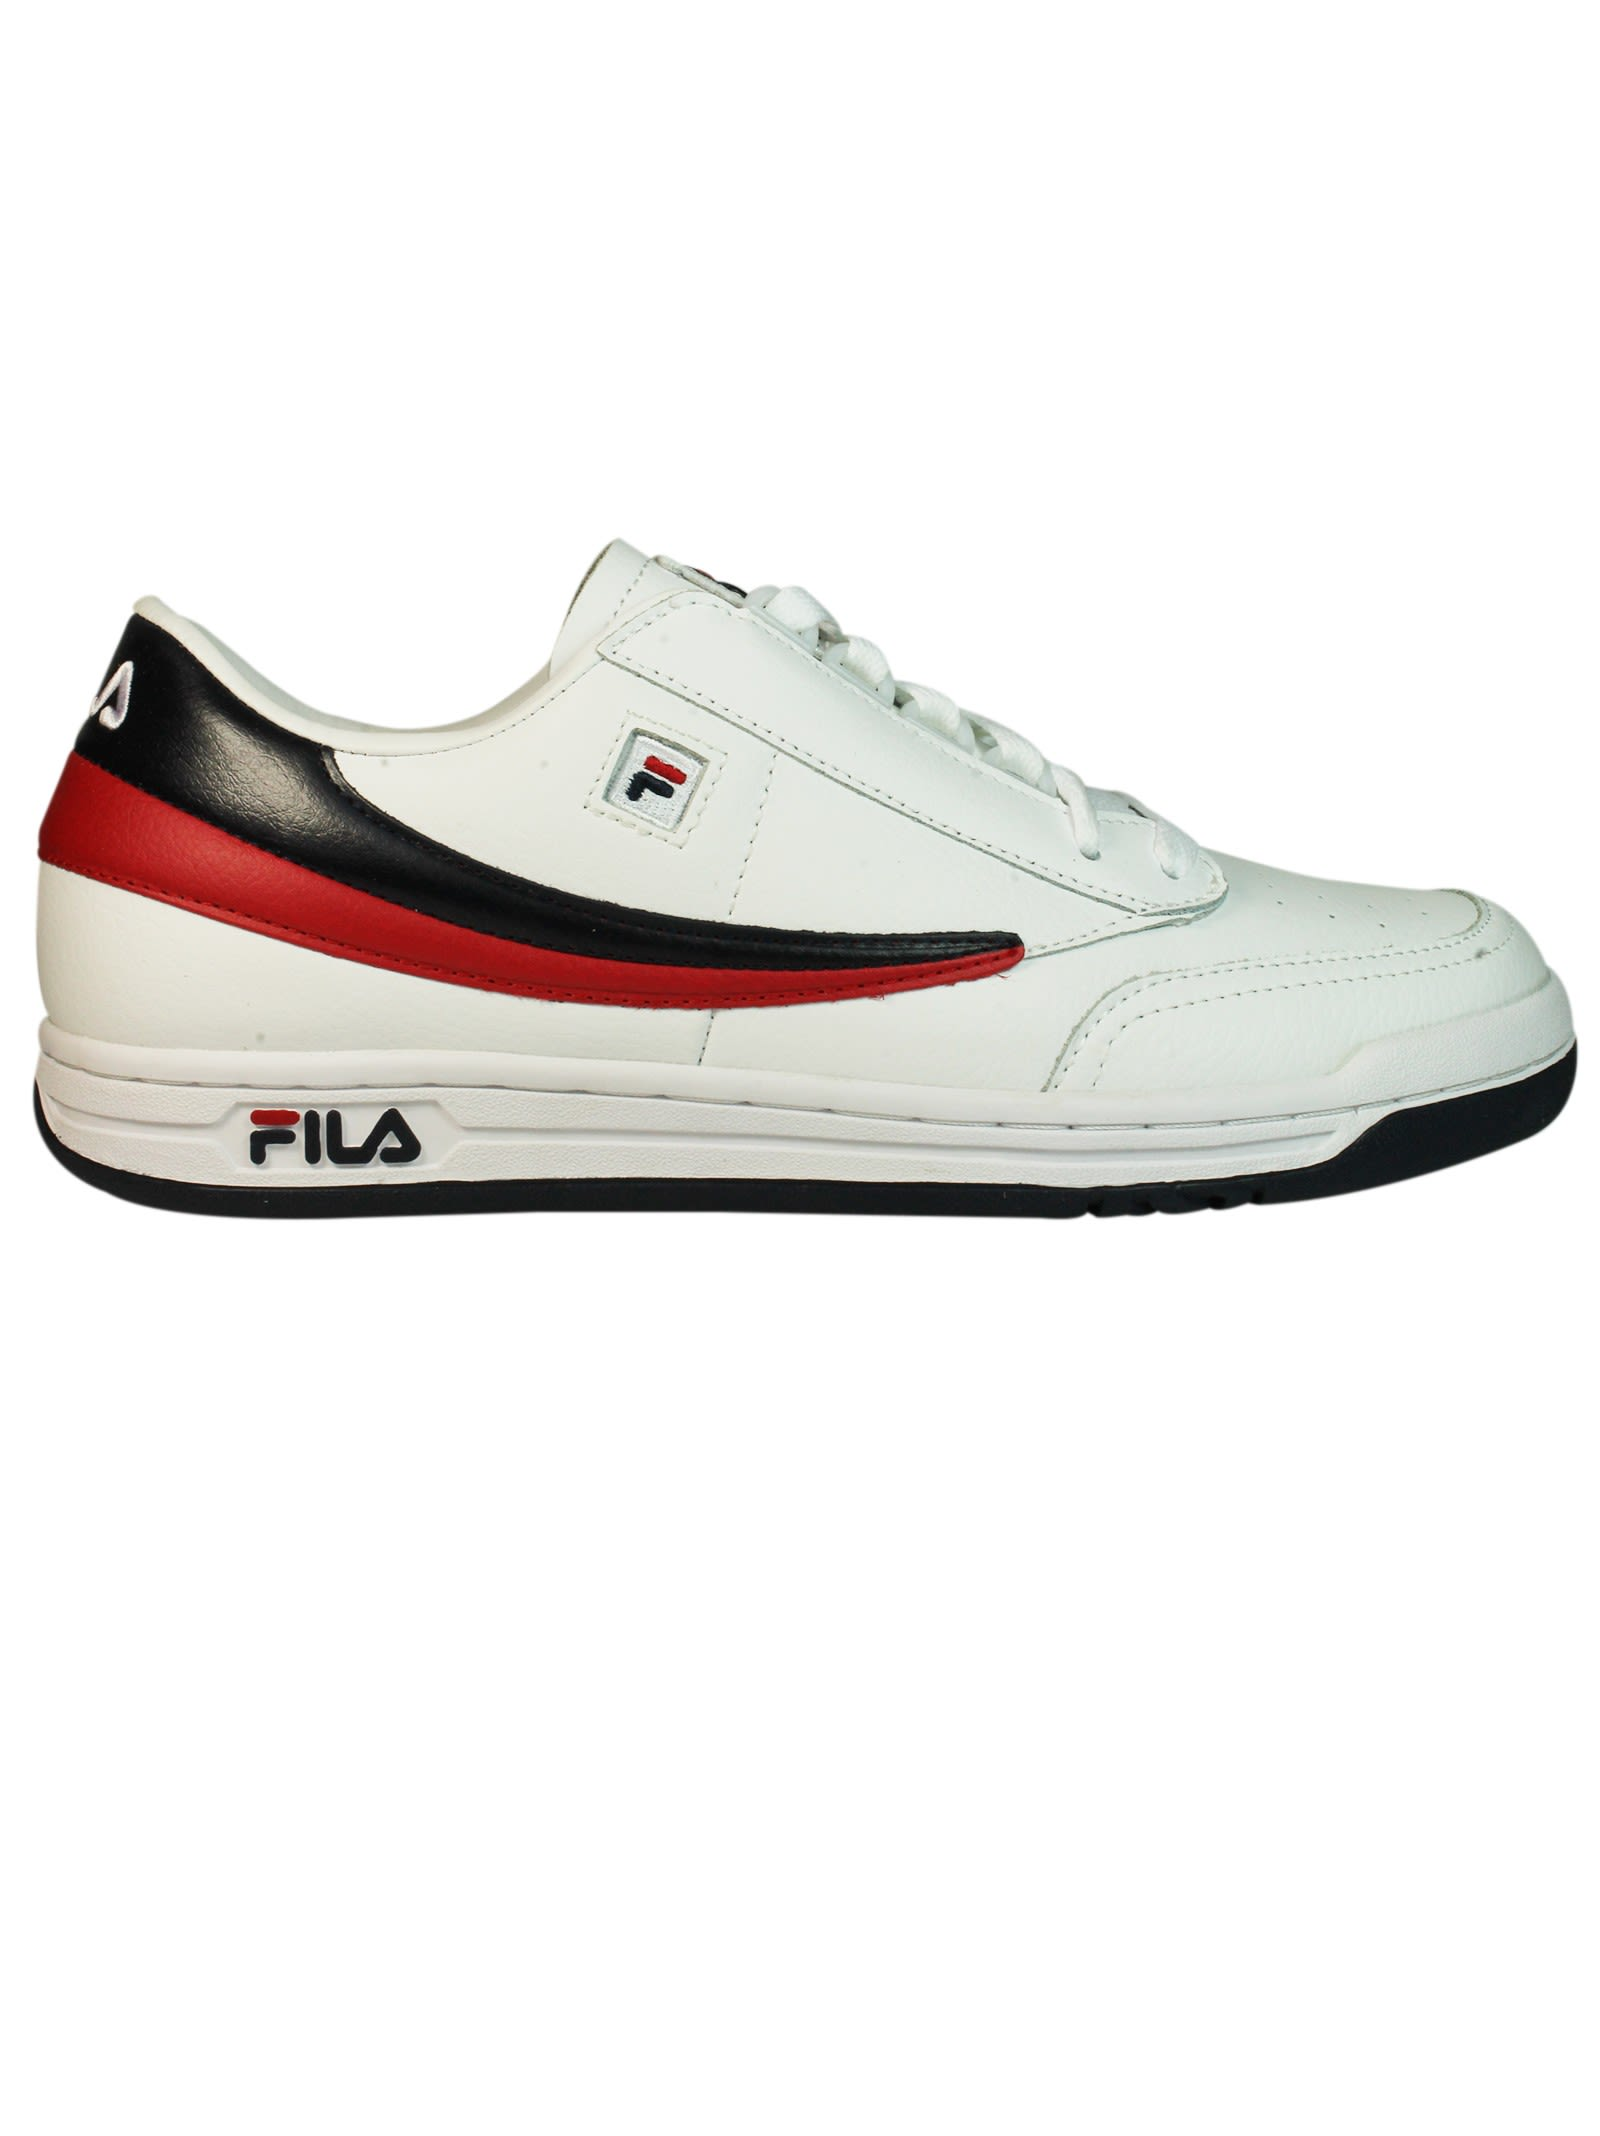 Fila White Navy Original Tennis Sneakers